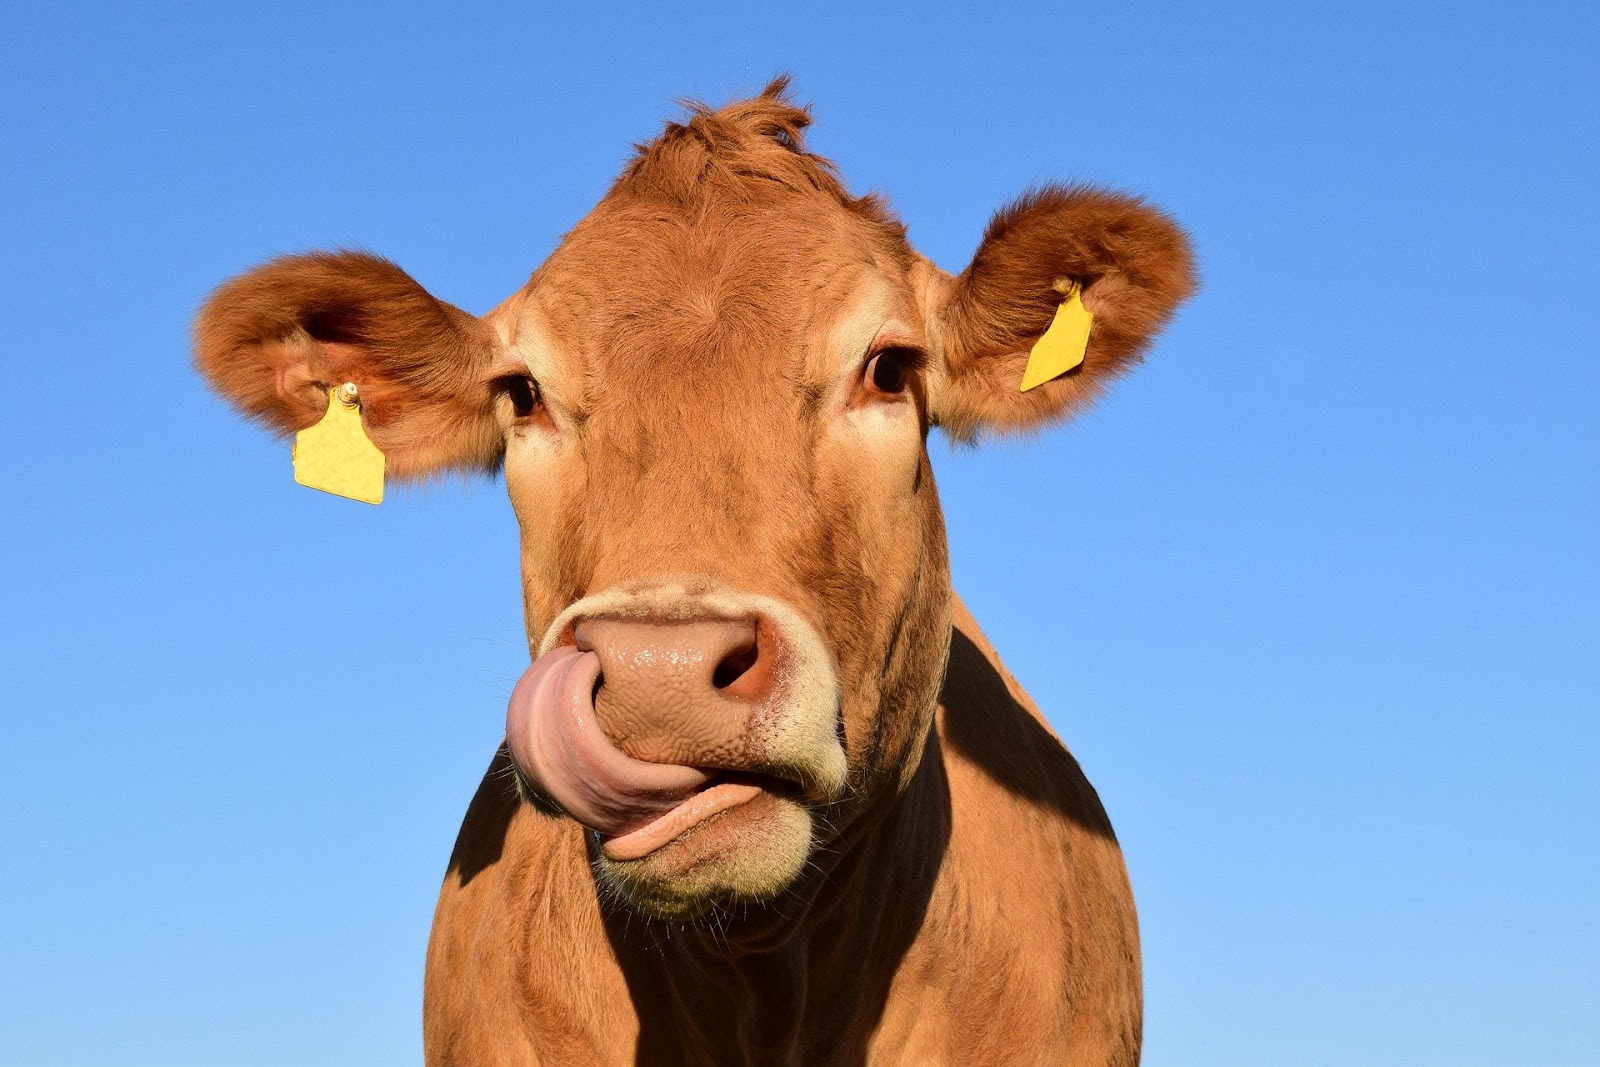 happy cow with its tongue out for vegan snacks